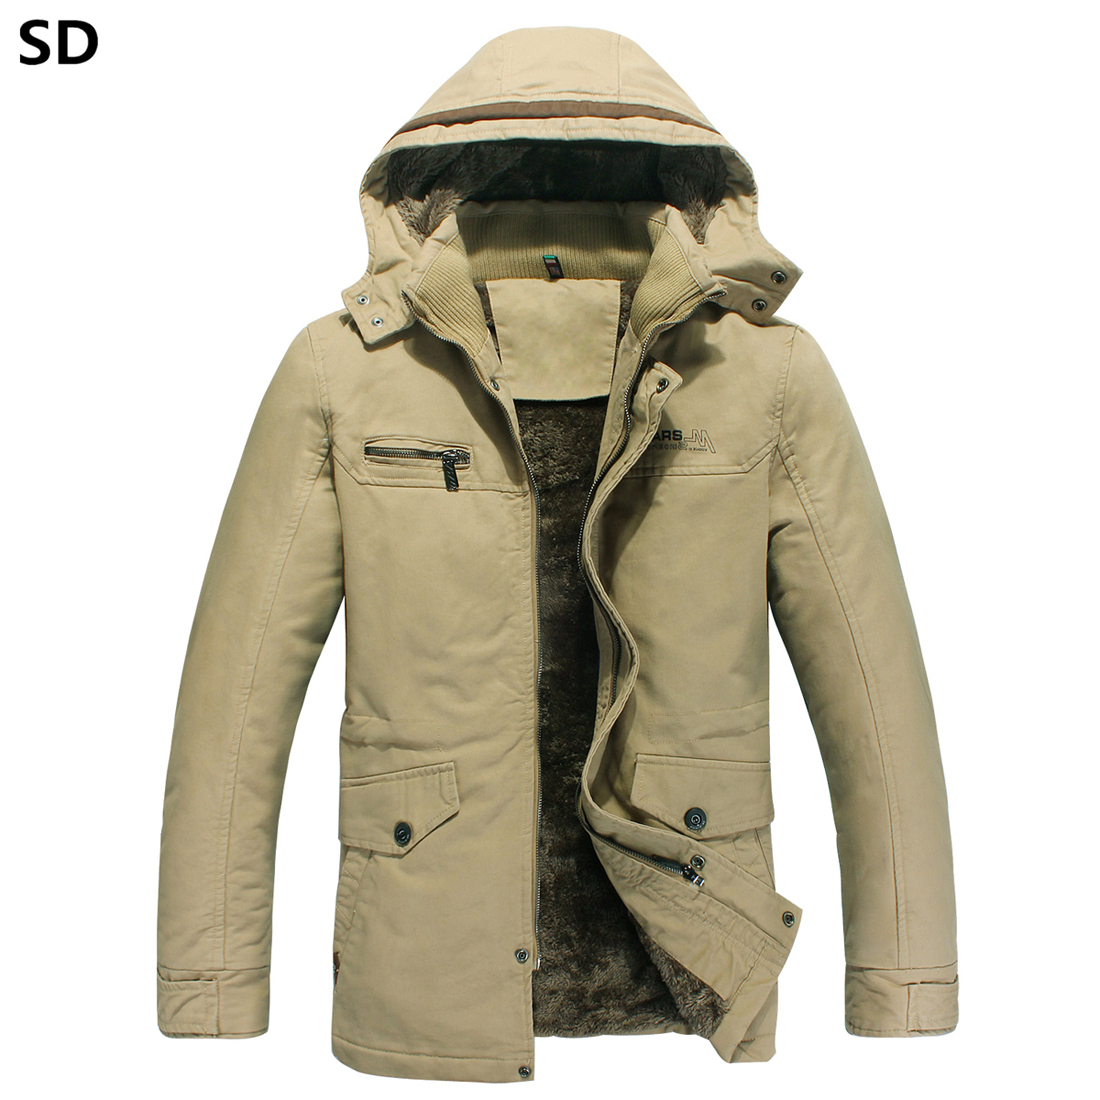 SD Hot Sale mens jackets and coats casual winter thick fleece jacket 2018 New Fashion warm windproof coat casacos masculino 604